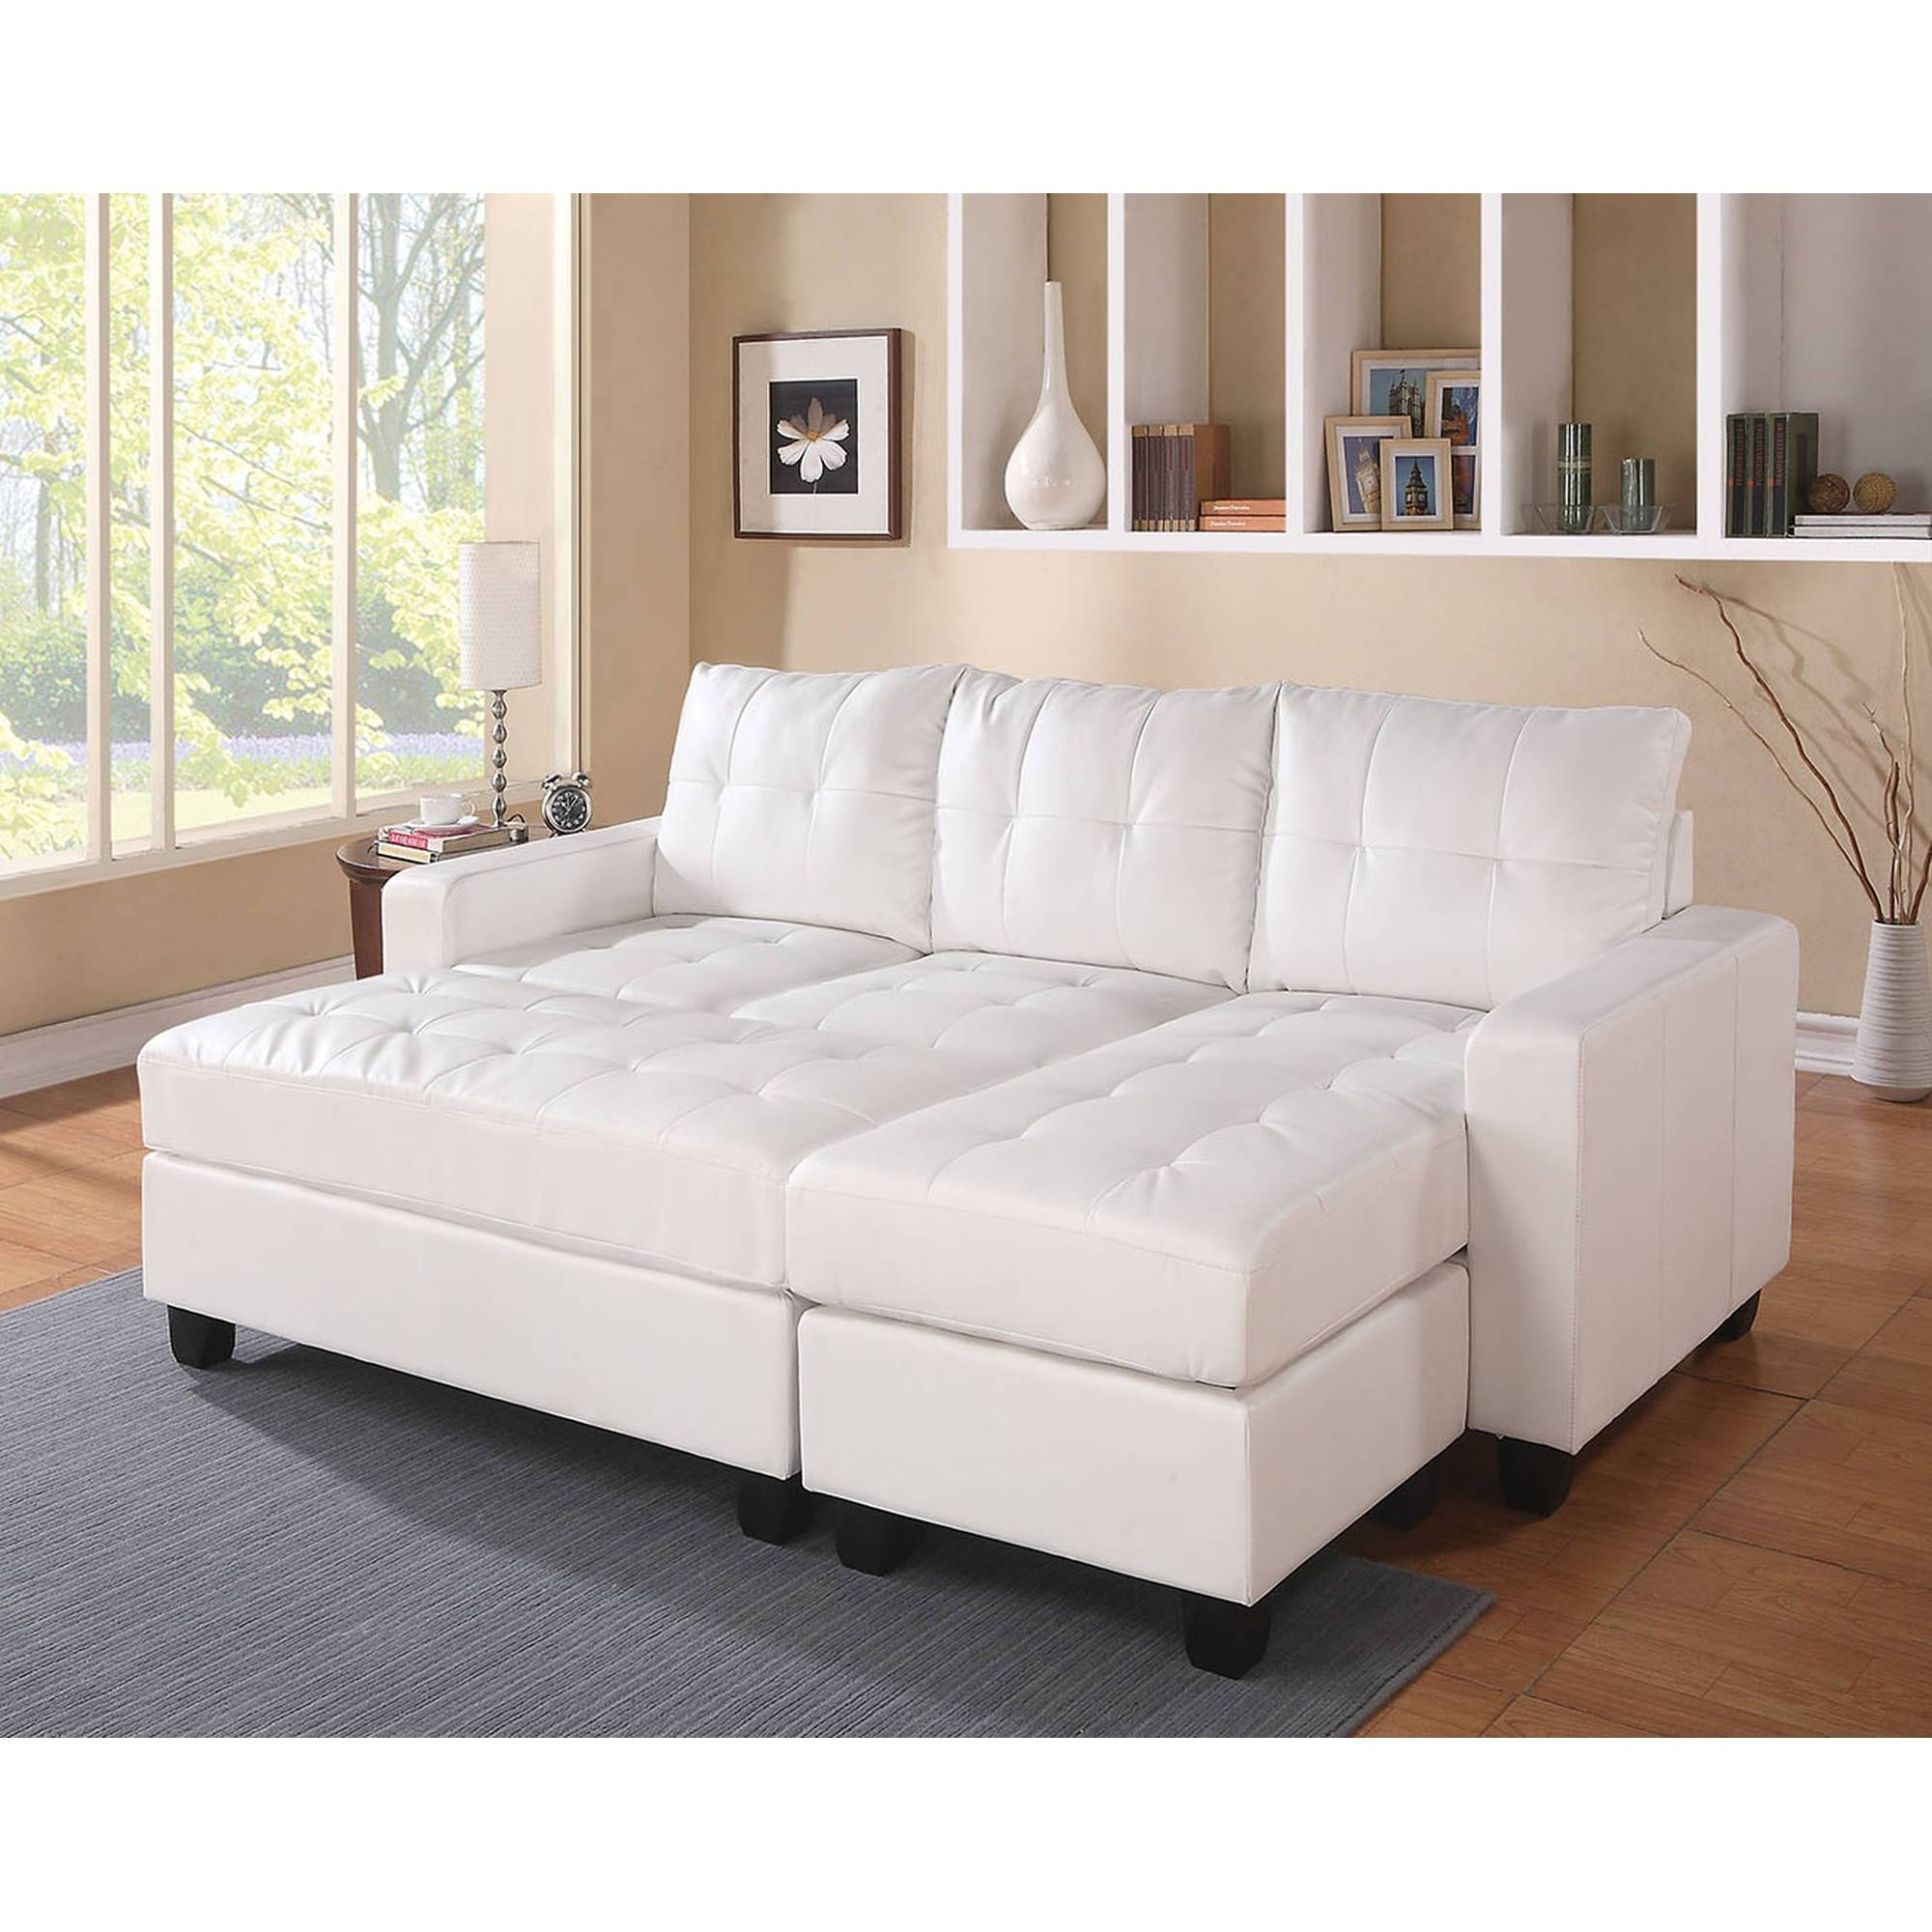 Acme Lyssa Reversible Chaise Sectional And Ottoman, Bonded Leather Regarding Sectional Sofa With 2 Chaises (View 6 of 30)